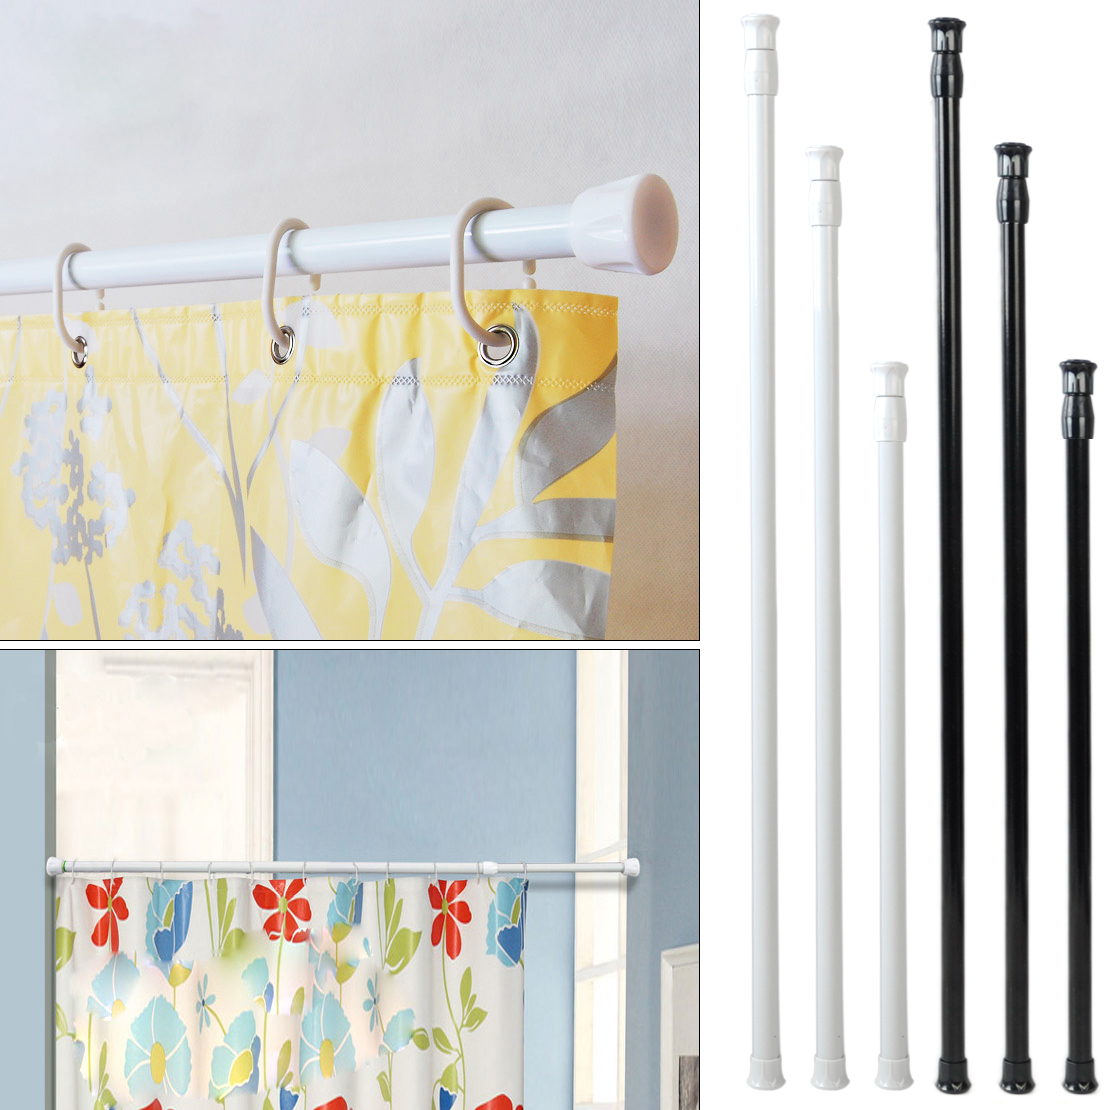 Extendable Adjustable 40-70cm Spring Loaded Tension Rod Rail Pole Hanger Telescopic Curtain Shower Bathroom Window Products